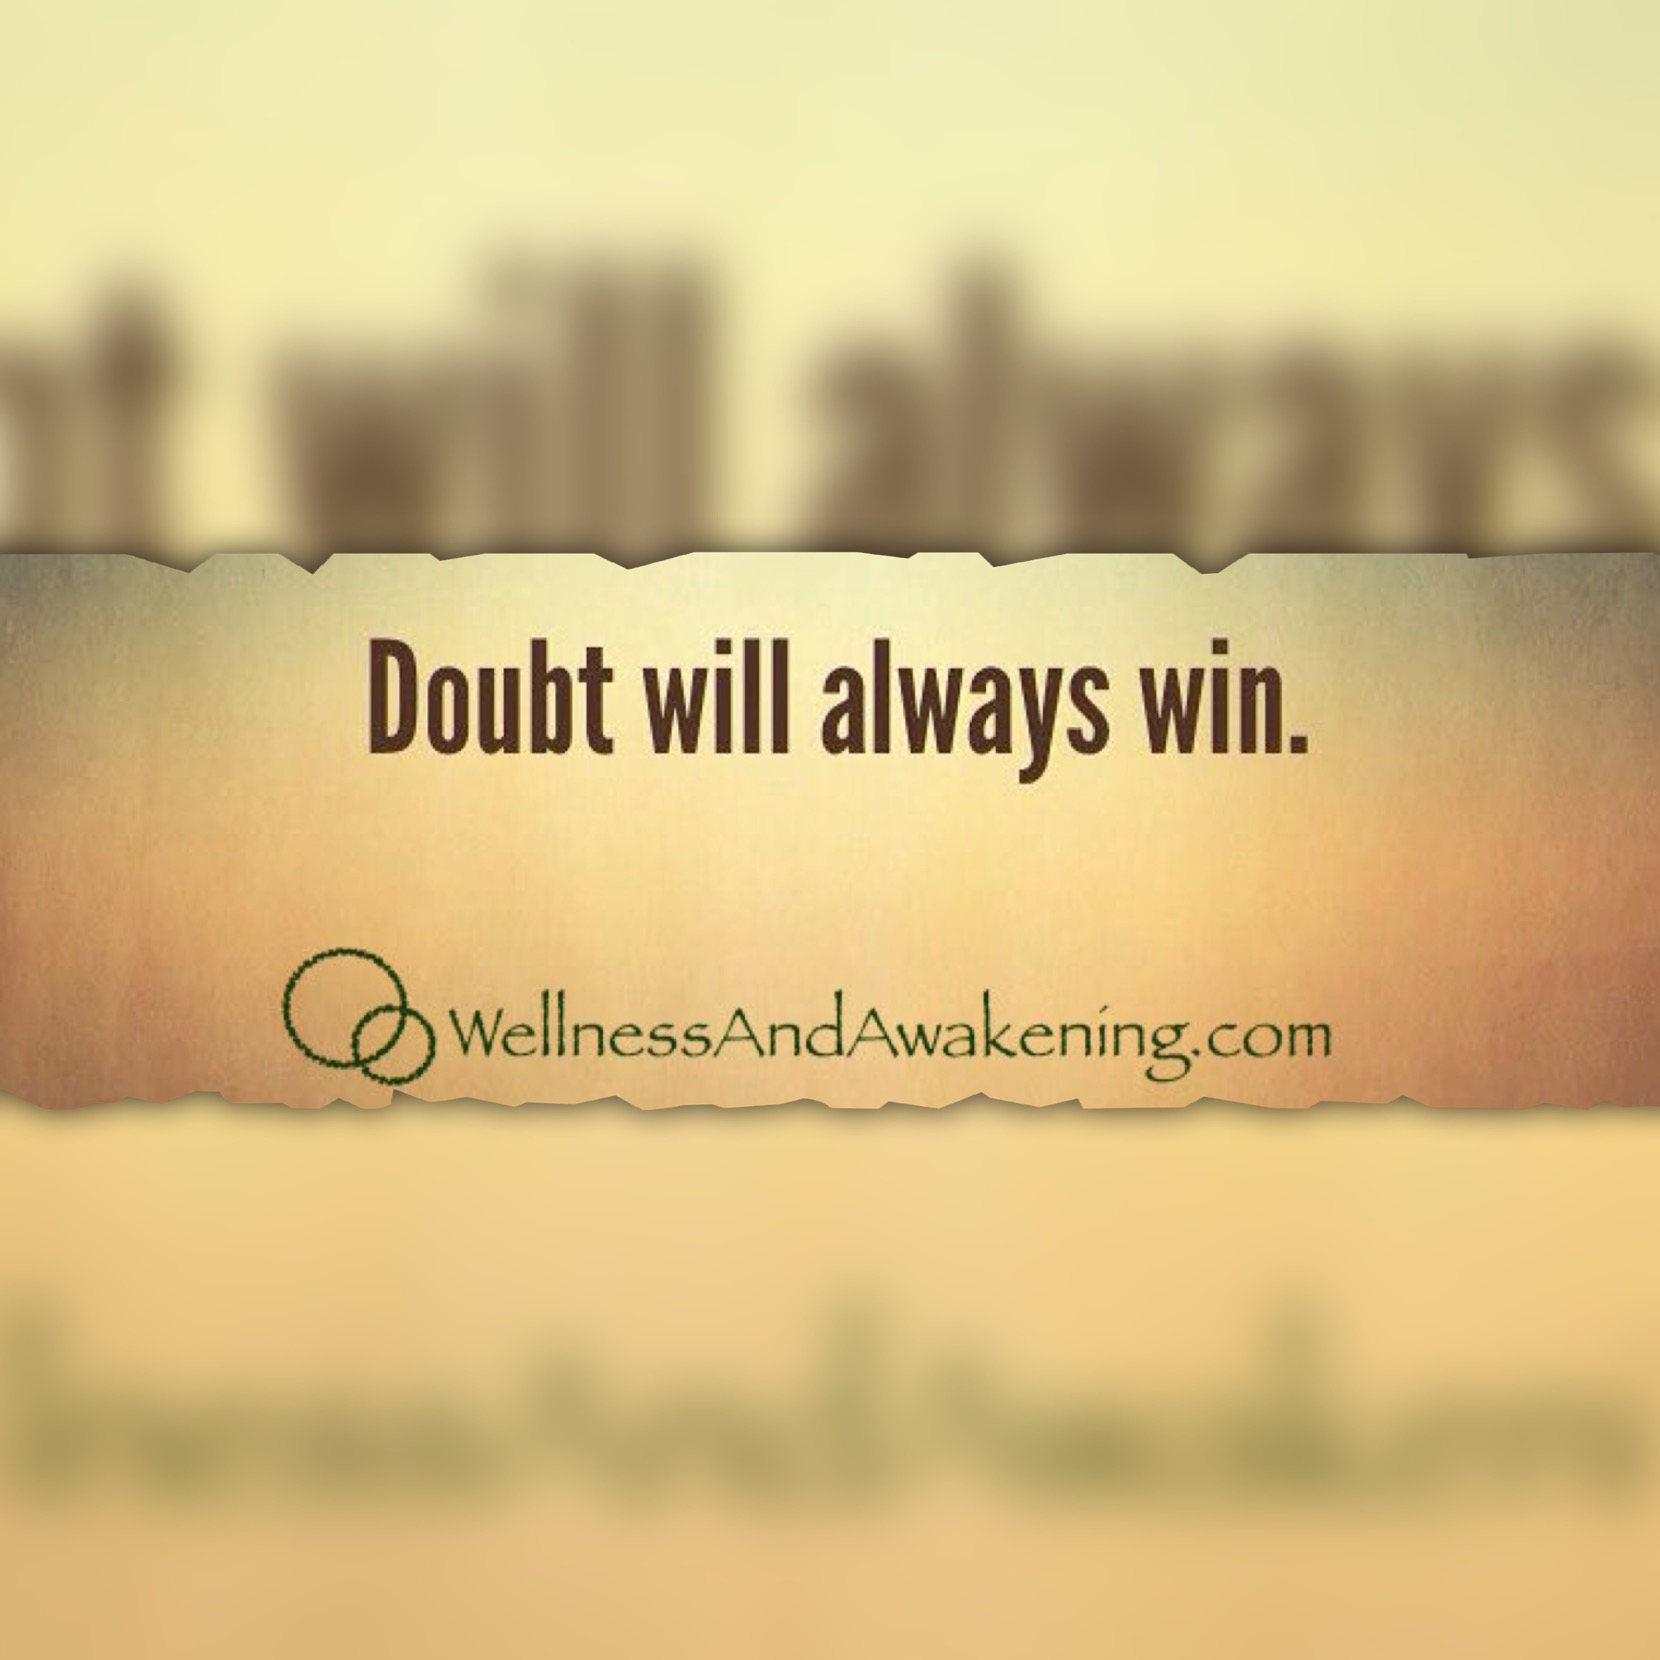 Doubt always wins